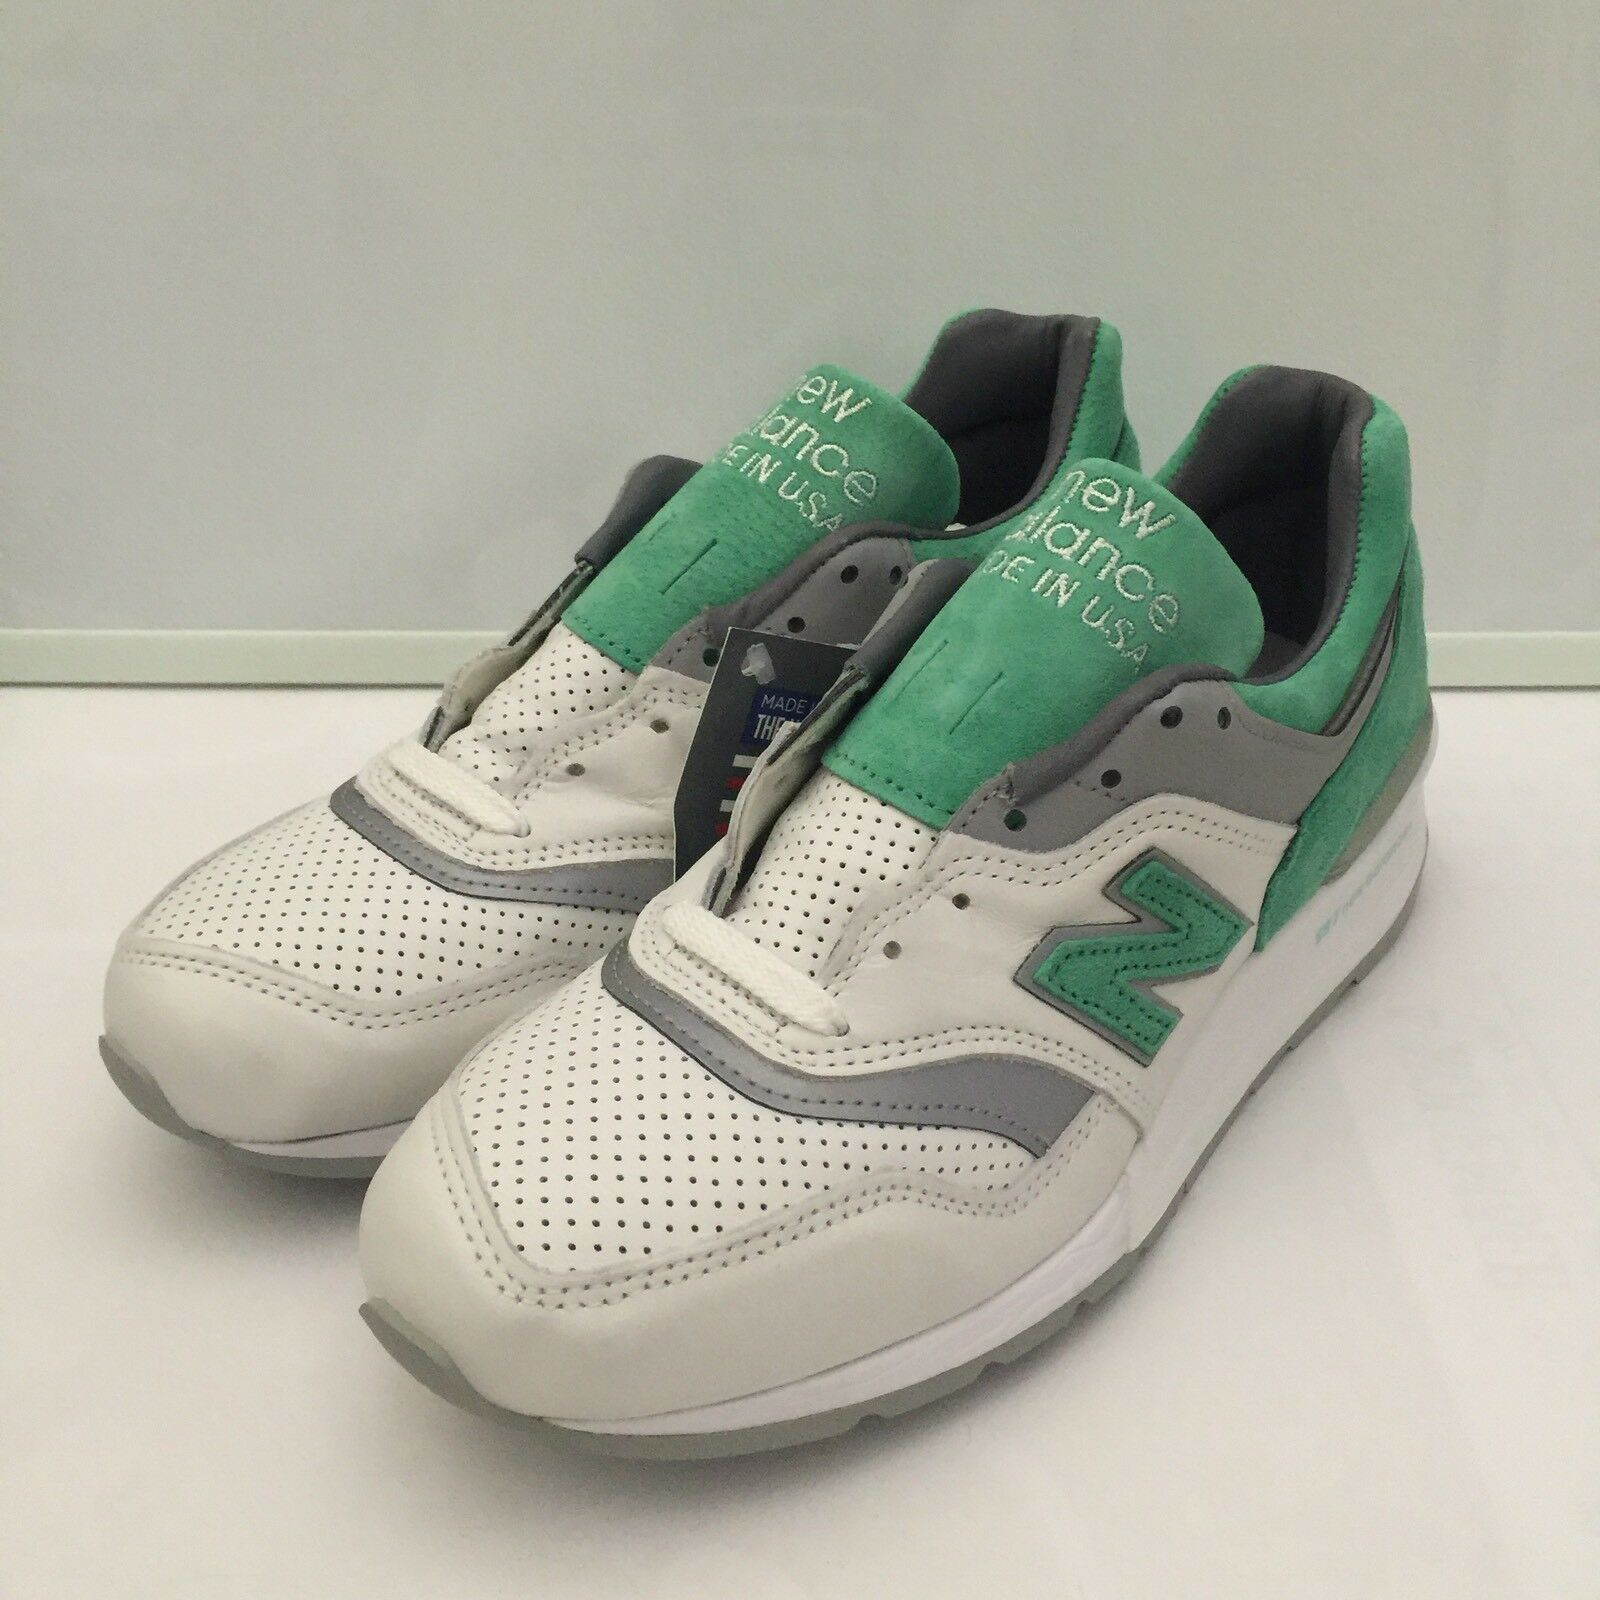 New Balance 997 Made In USA White Mint Kith Ronnie Fieg Concept (M997CMA) SZ 7.5